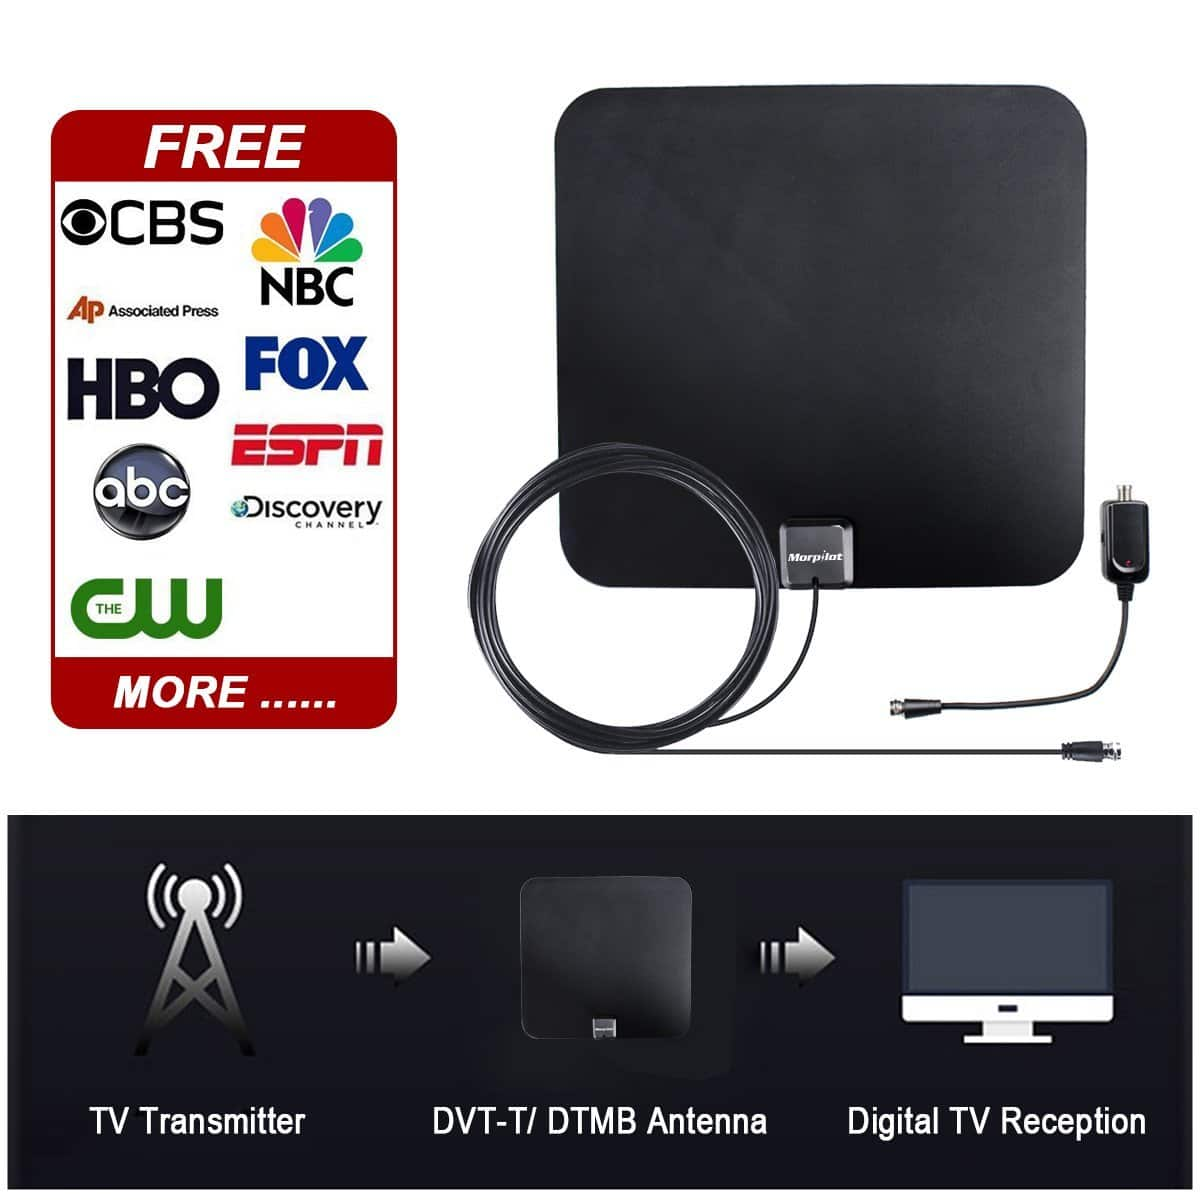 45% Off Indoor Amplified Digital HDTV Antenna 60 Mile Range with Detachable Amplifier Signal Booster $11.54